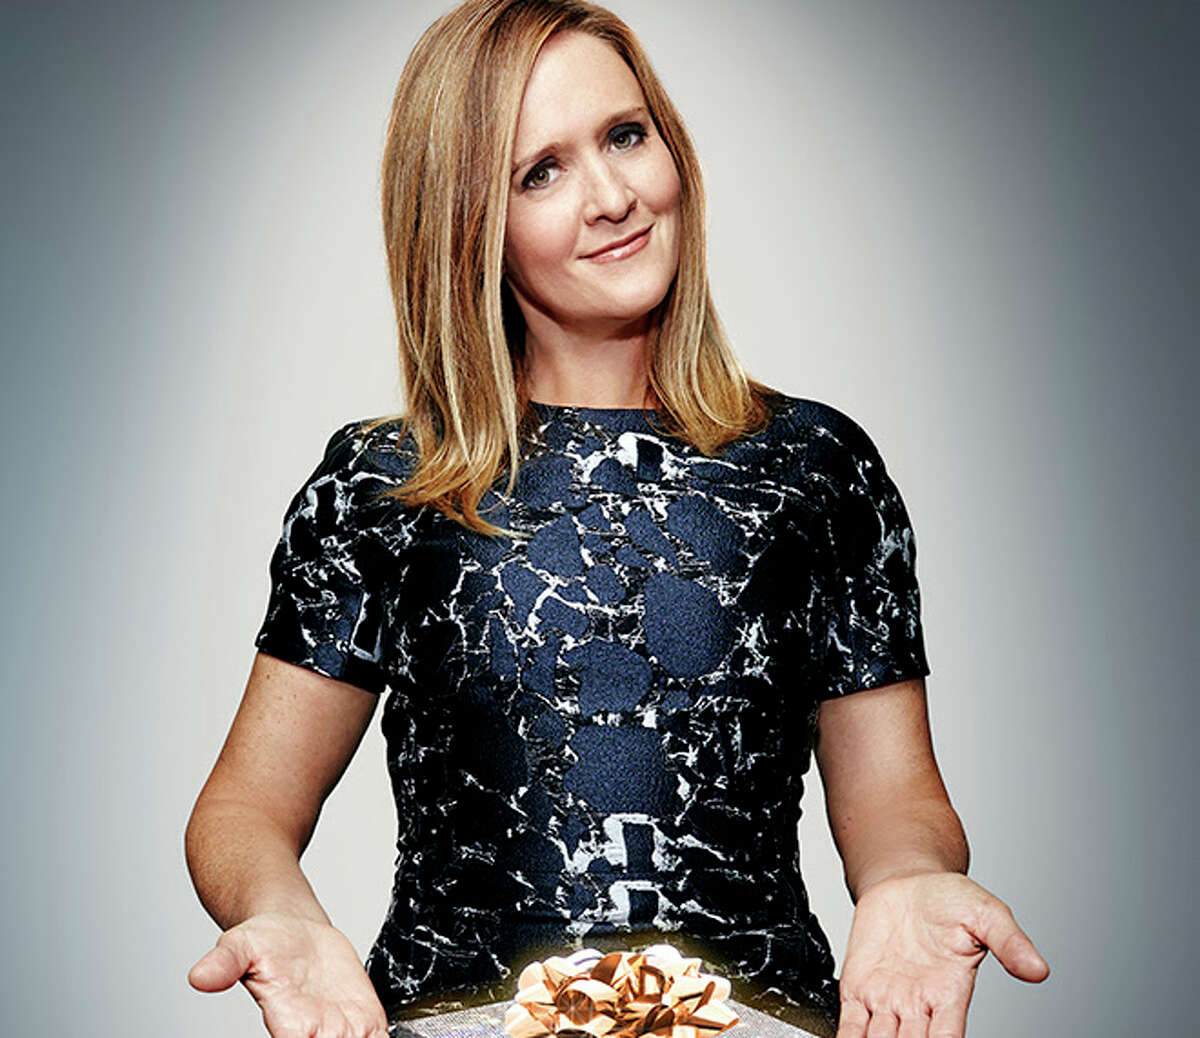 Full Frontal with Samantha Bee : When she was passed over for the anchor desk of The Daily Show after Jon Stewart left, Samantha Bee headed to TBS and created her own comedy news series with a fiercely feminist voice. She's angry, she's hilarious, and like fellow Daily Show alum John Oliver, she has left The Daily Show in the dust. (TBS)